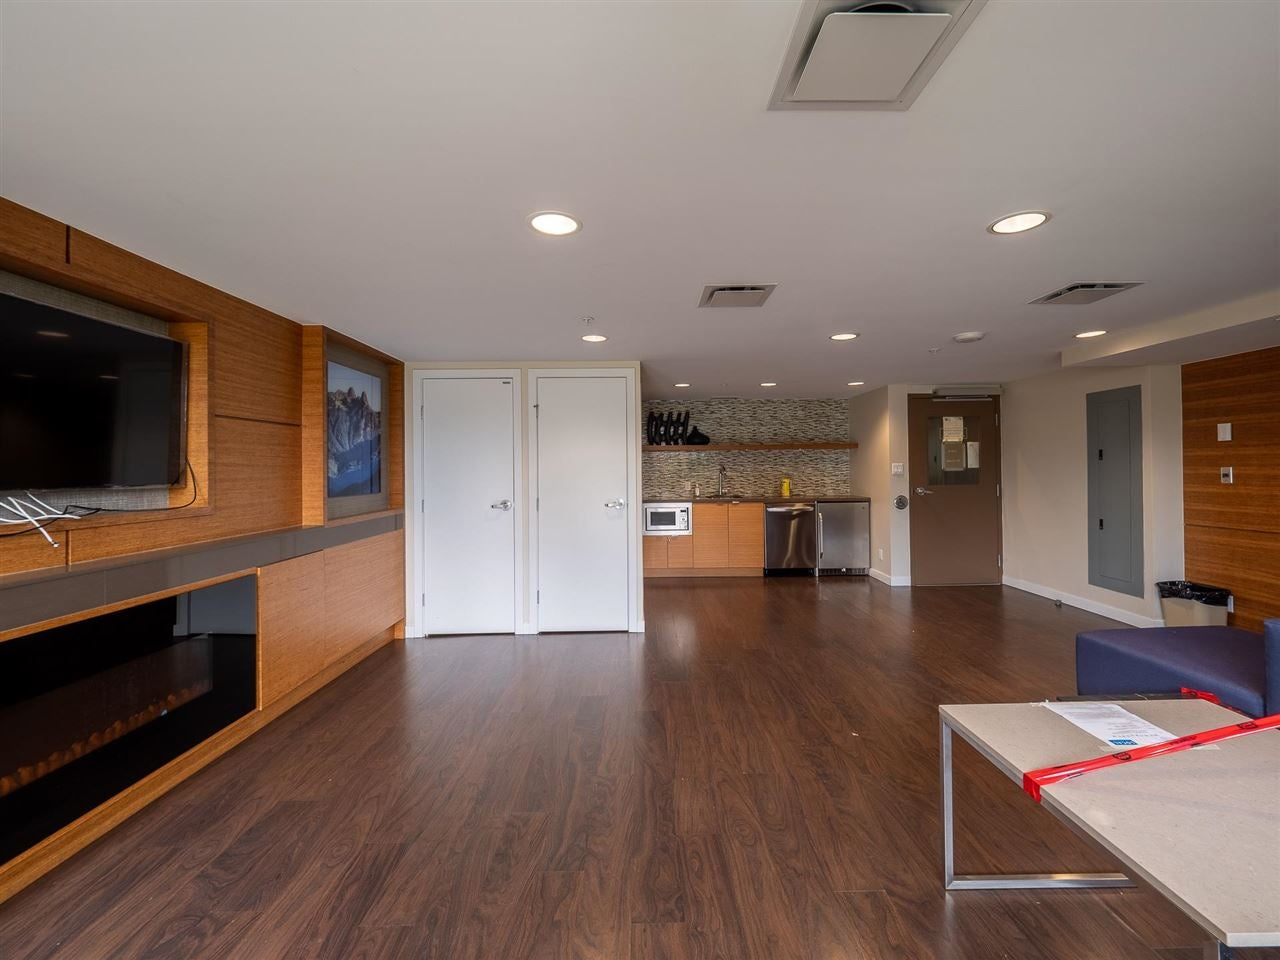 1607 135 E 17TH STREET - Central Lonsdale Apartment/Condo for sale, 1 Bedroom (R2603489) - #22